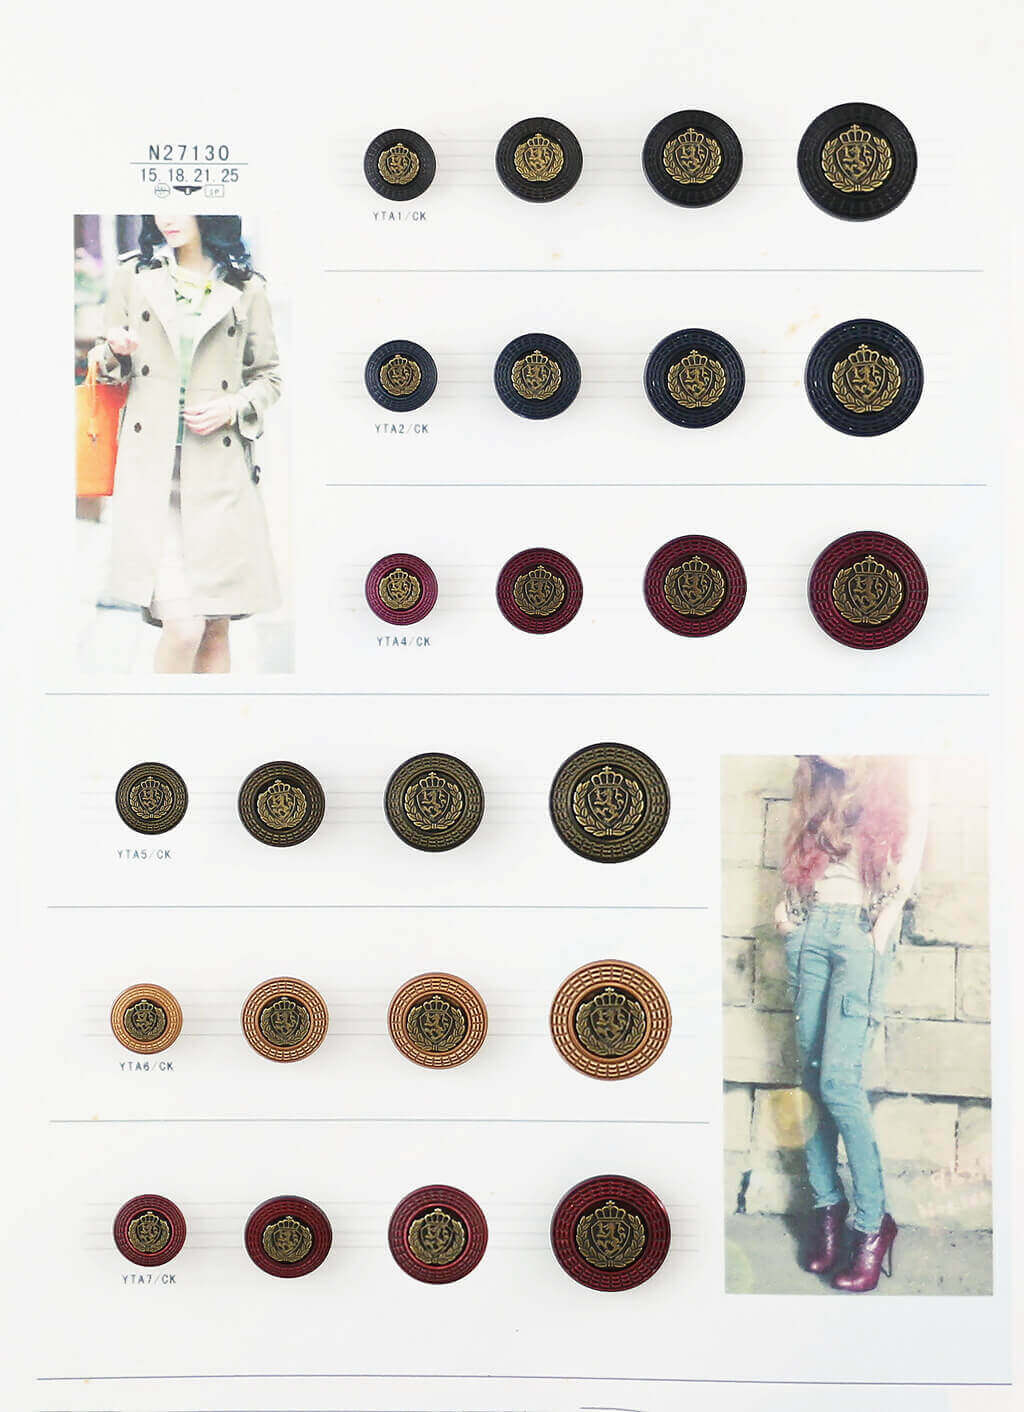 imitation leather button catalogue-1